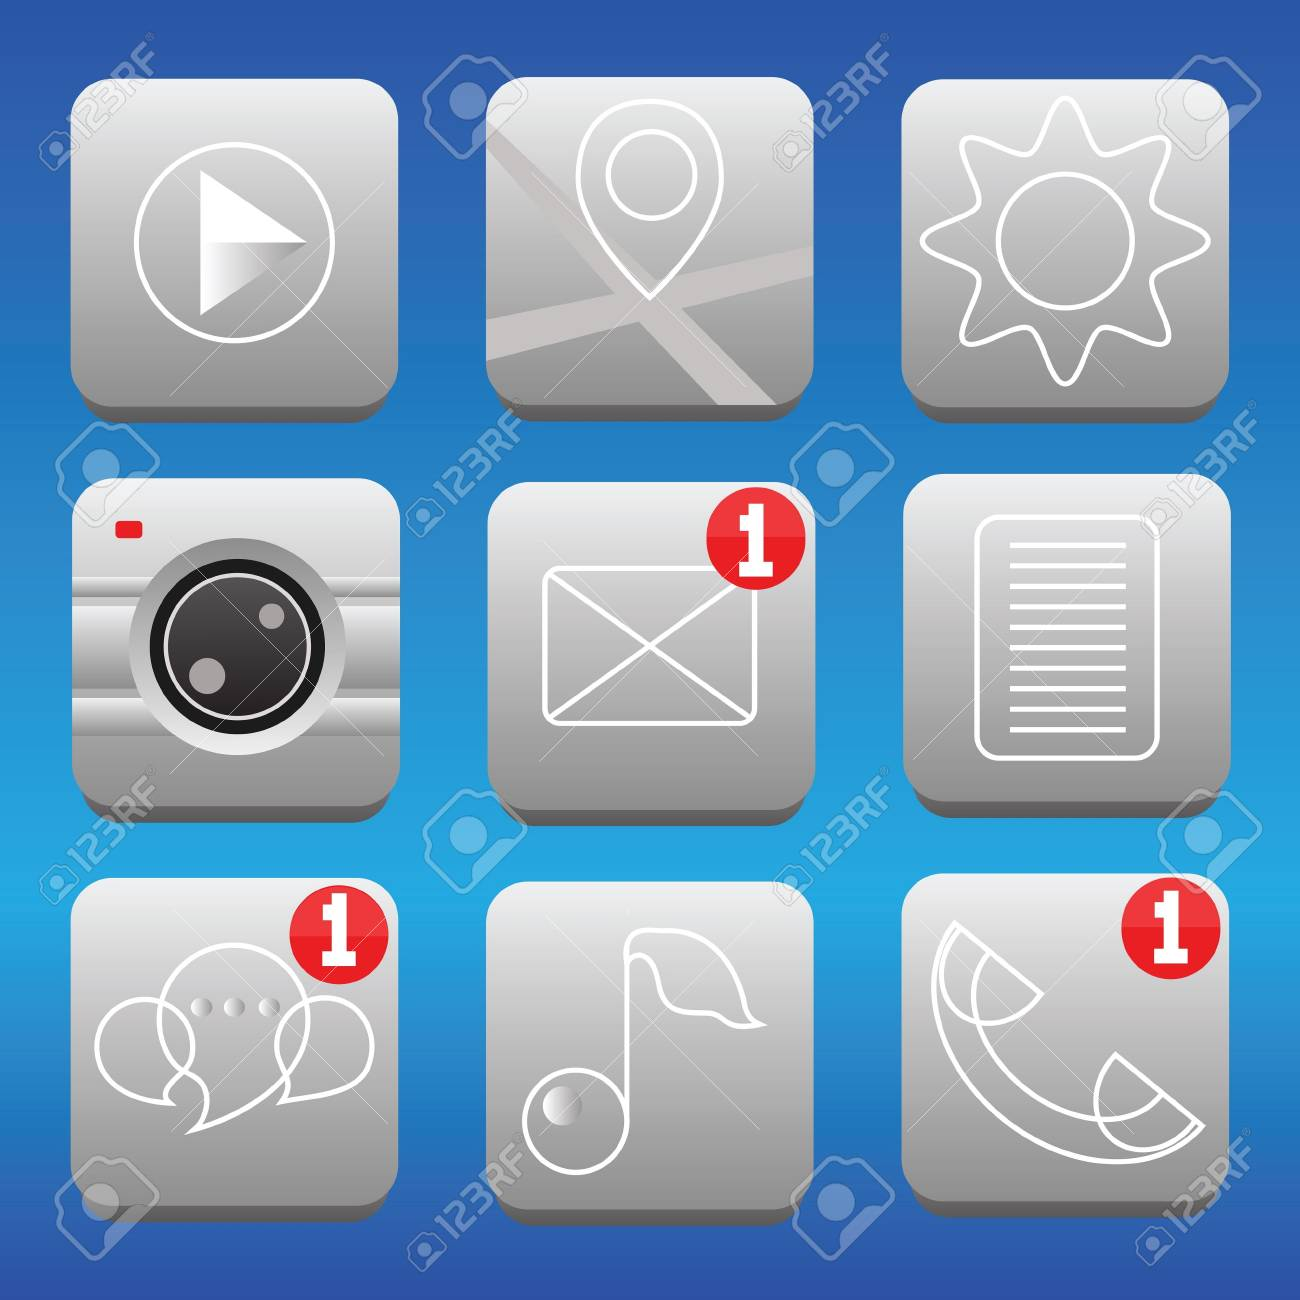 set of icons for smartphone Stock Vector - 20038485